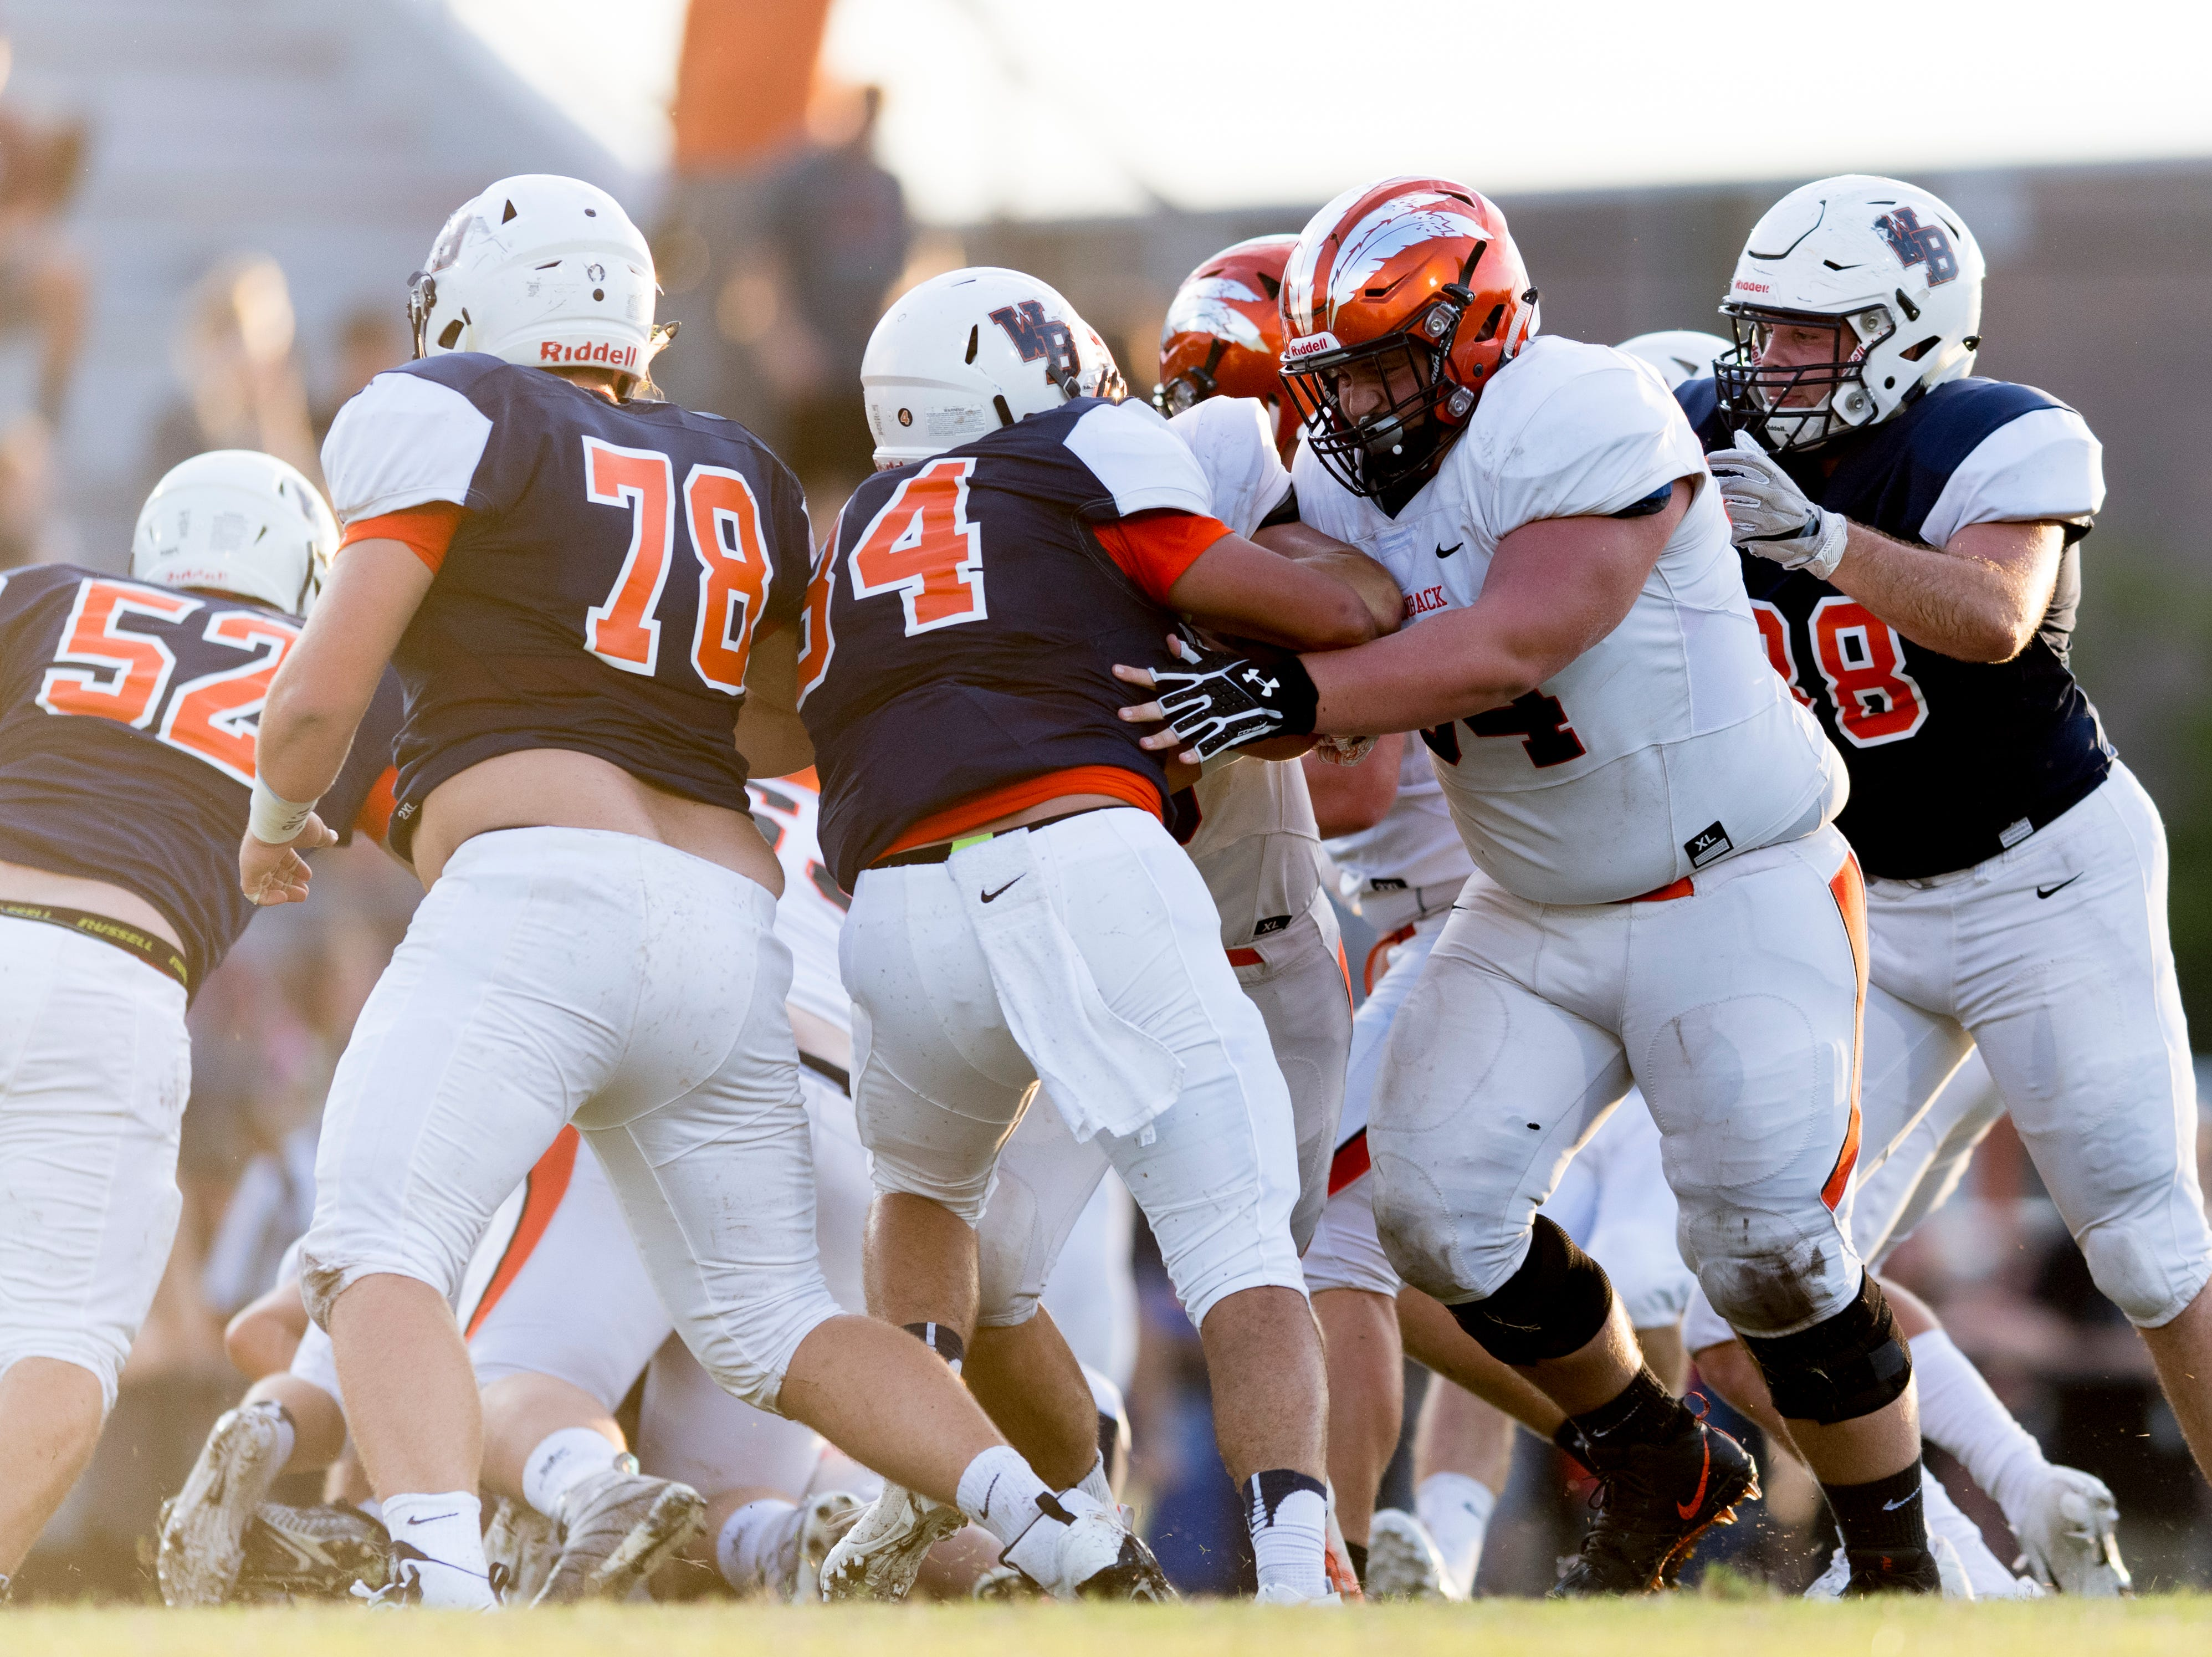 Greenback and William Blount players tackle one another during the Blount County football jamboree at William Blount High School in Maryville, Tennessee on Friday, August 10, 2018.